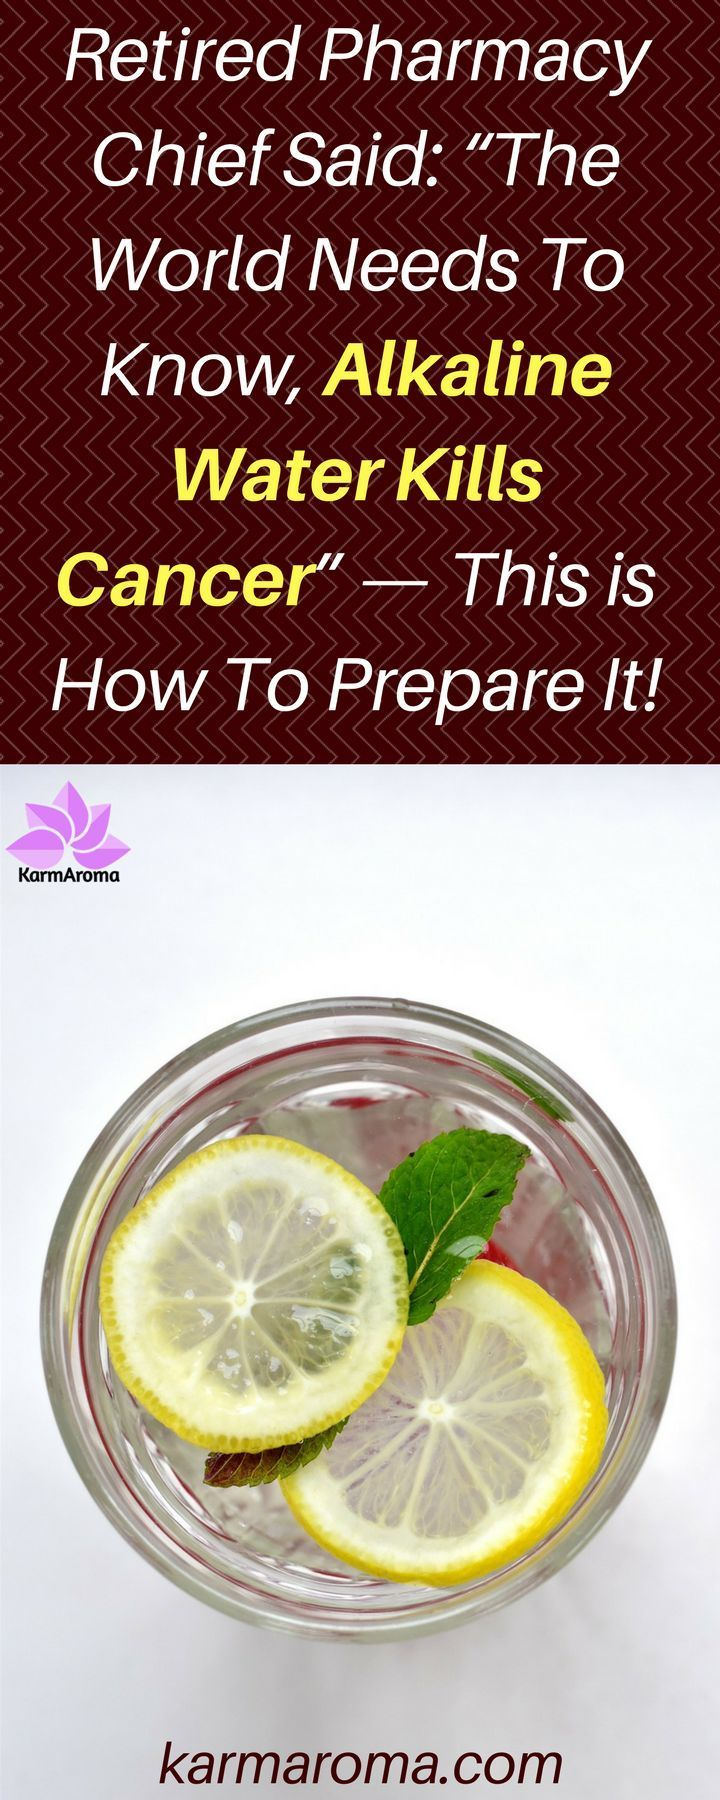 How To Prepare Alkaline Water - in order to get all the benefits from alkaline water, you need to prepare this in a right way. In this article, you will find how to make alkaline water correctly.